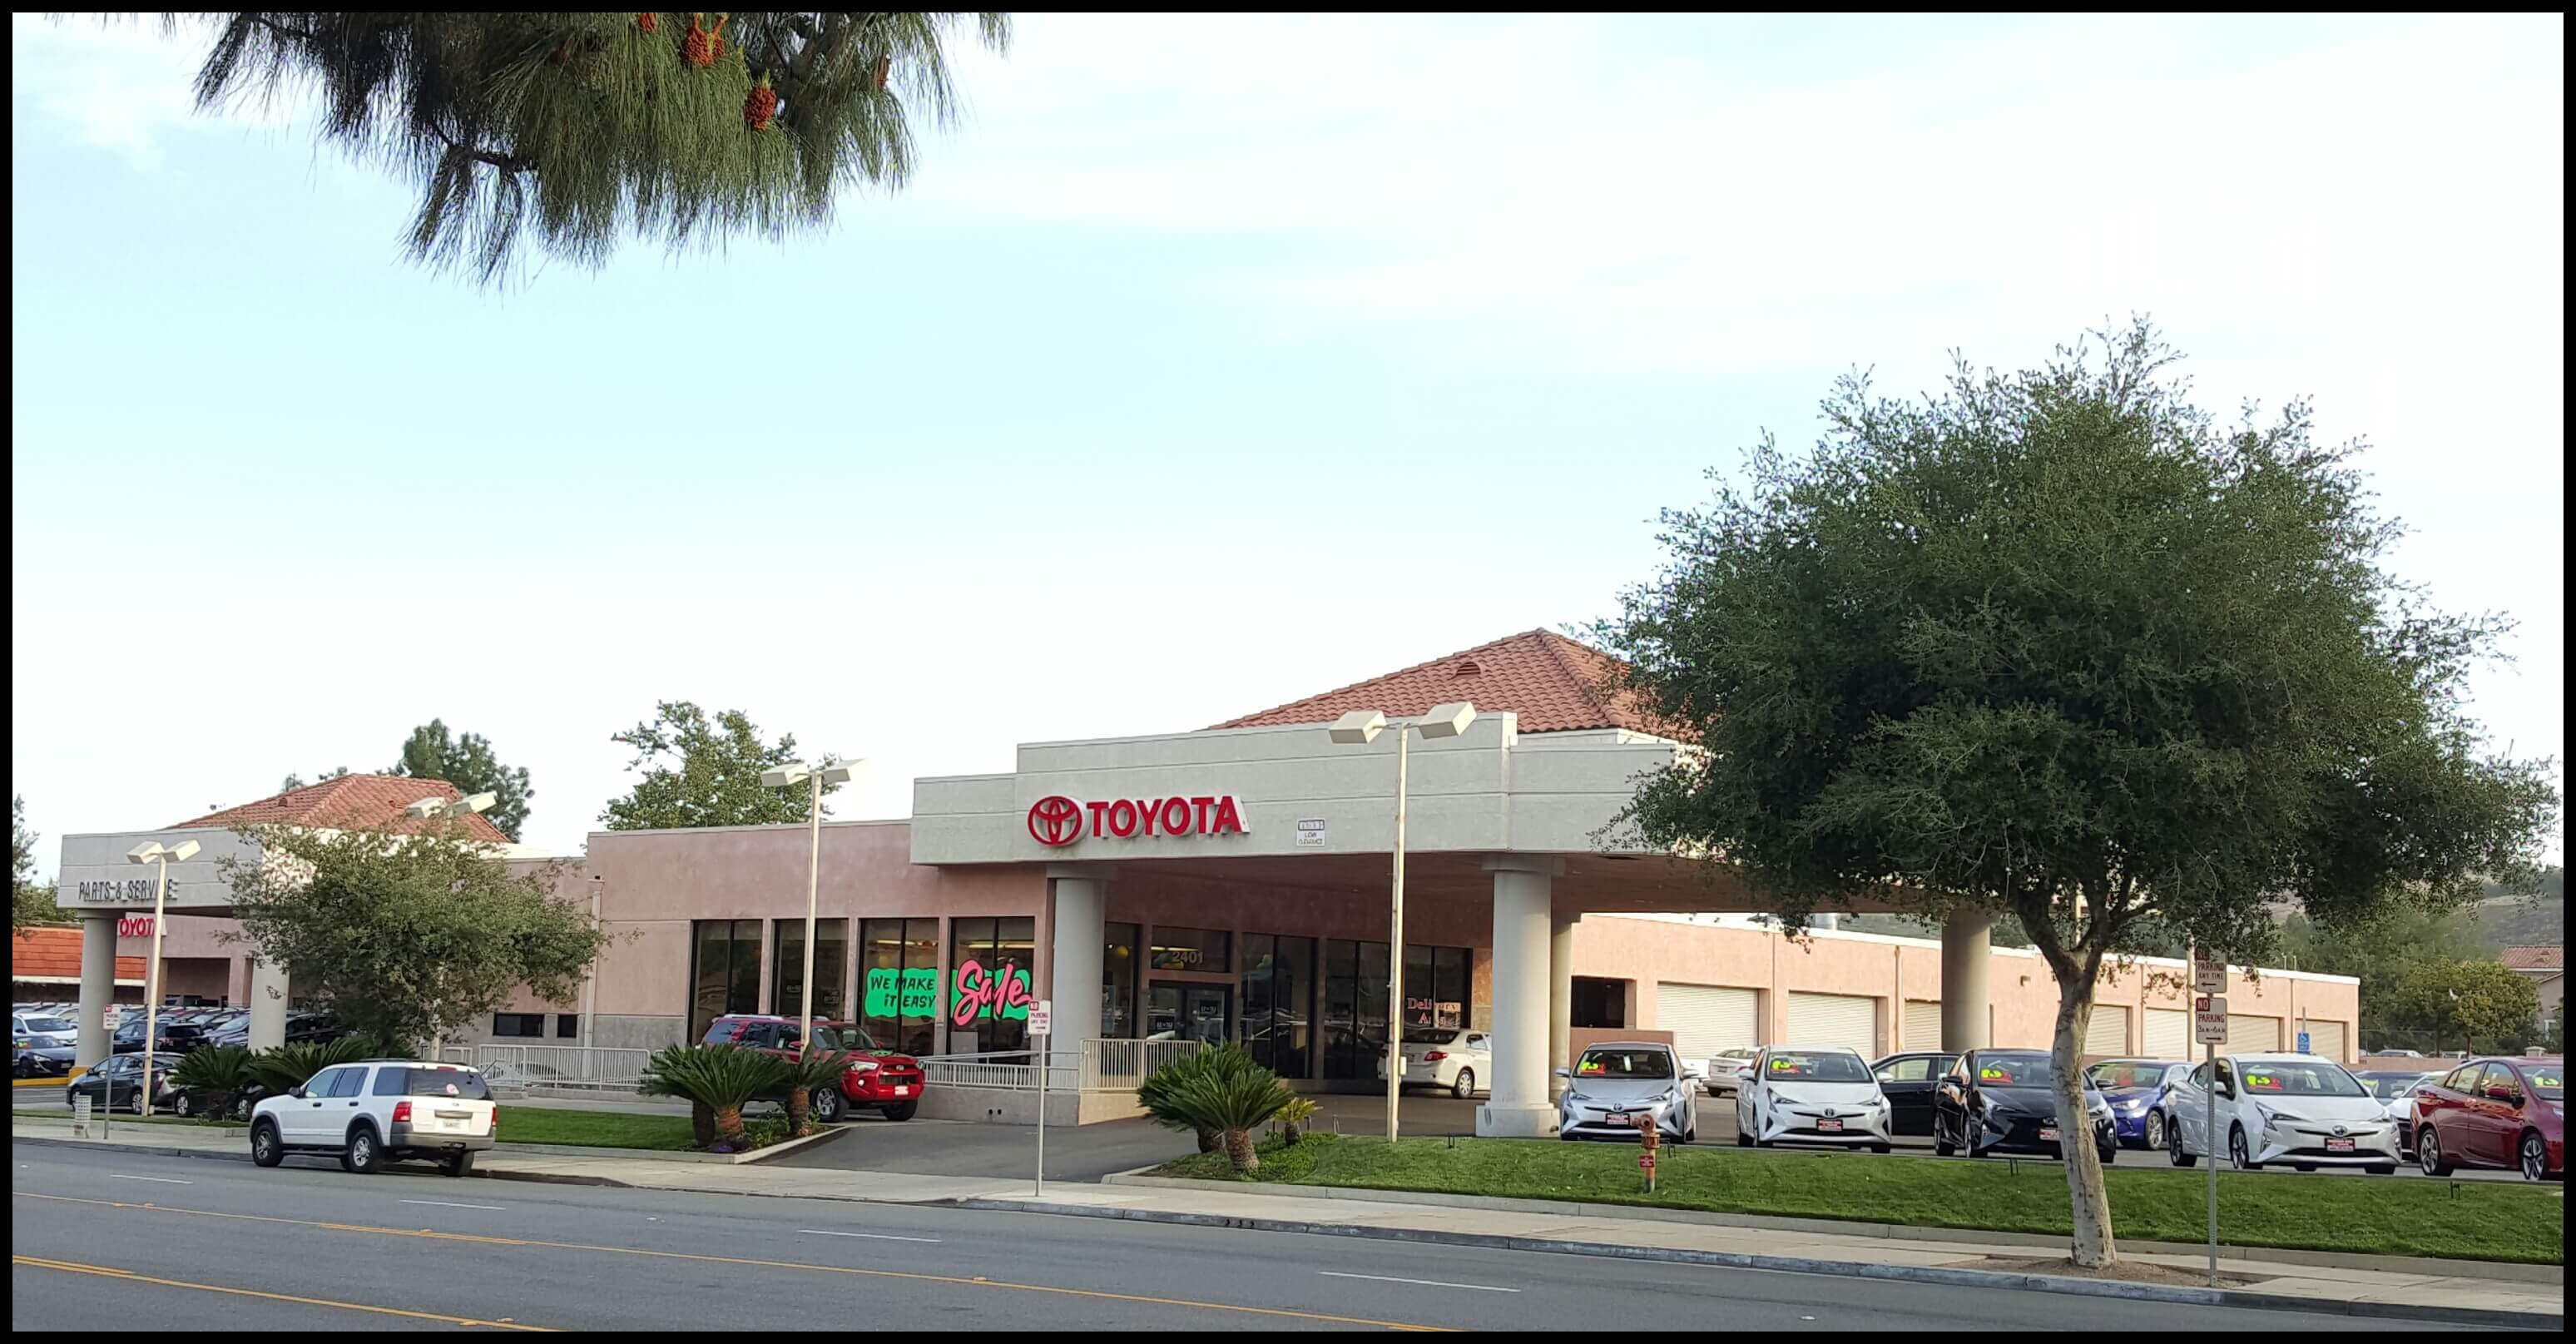 Expert Automotive Services for Toyota Vehicles in Thousand Oaks